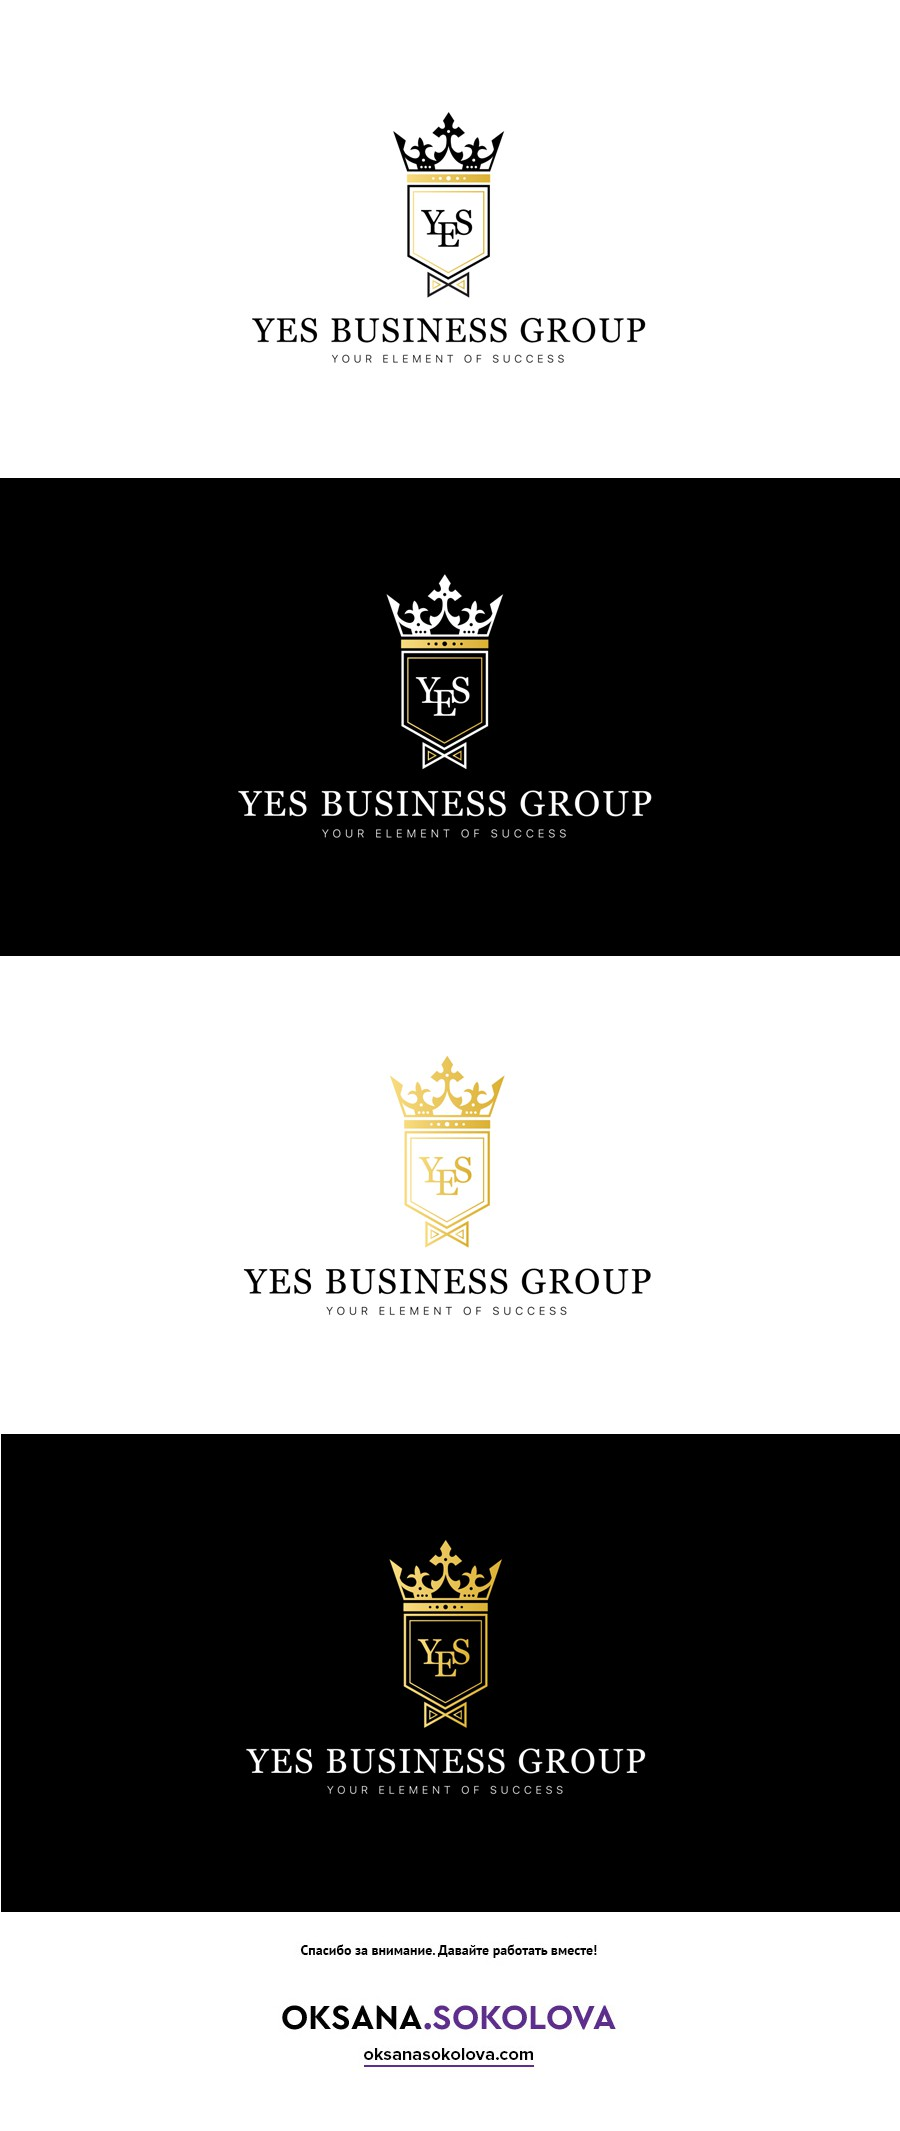 Yes Business Group